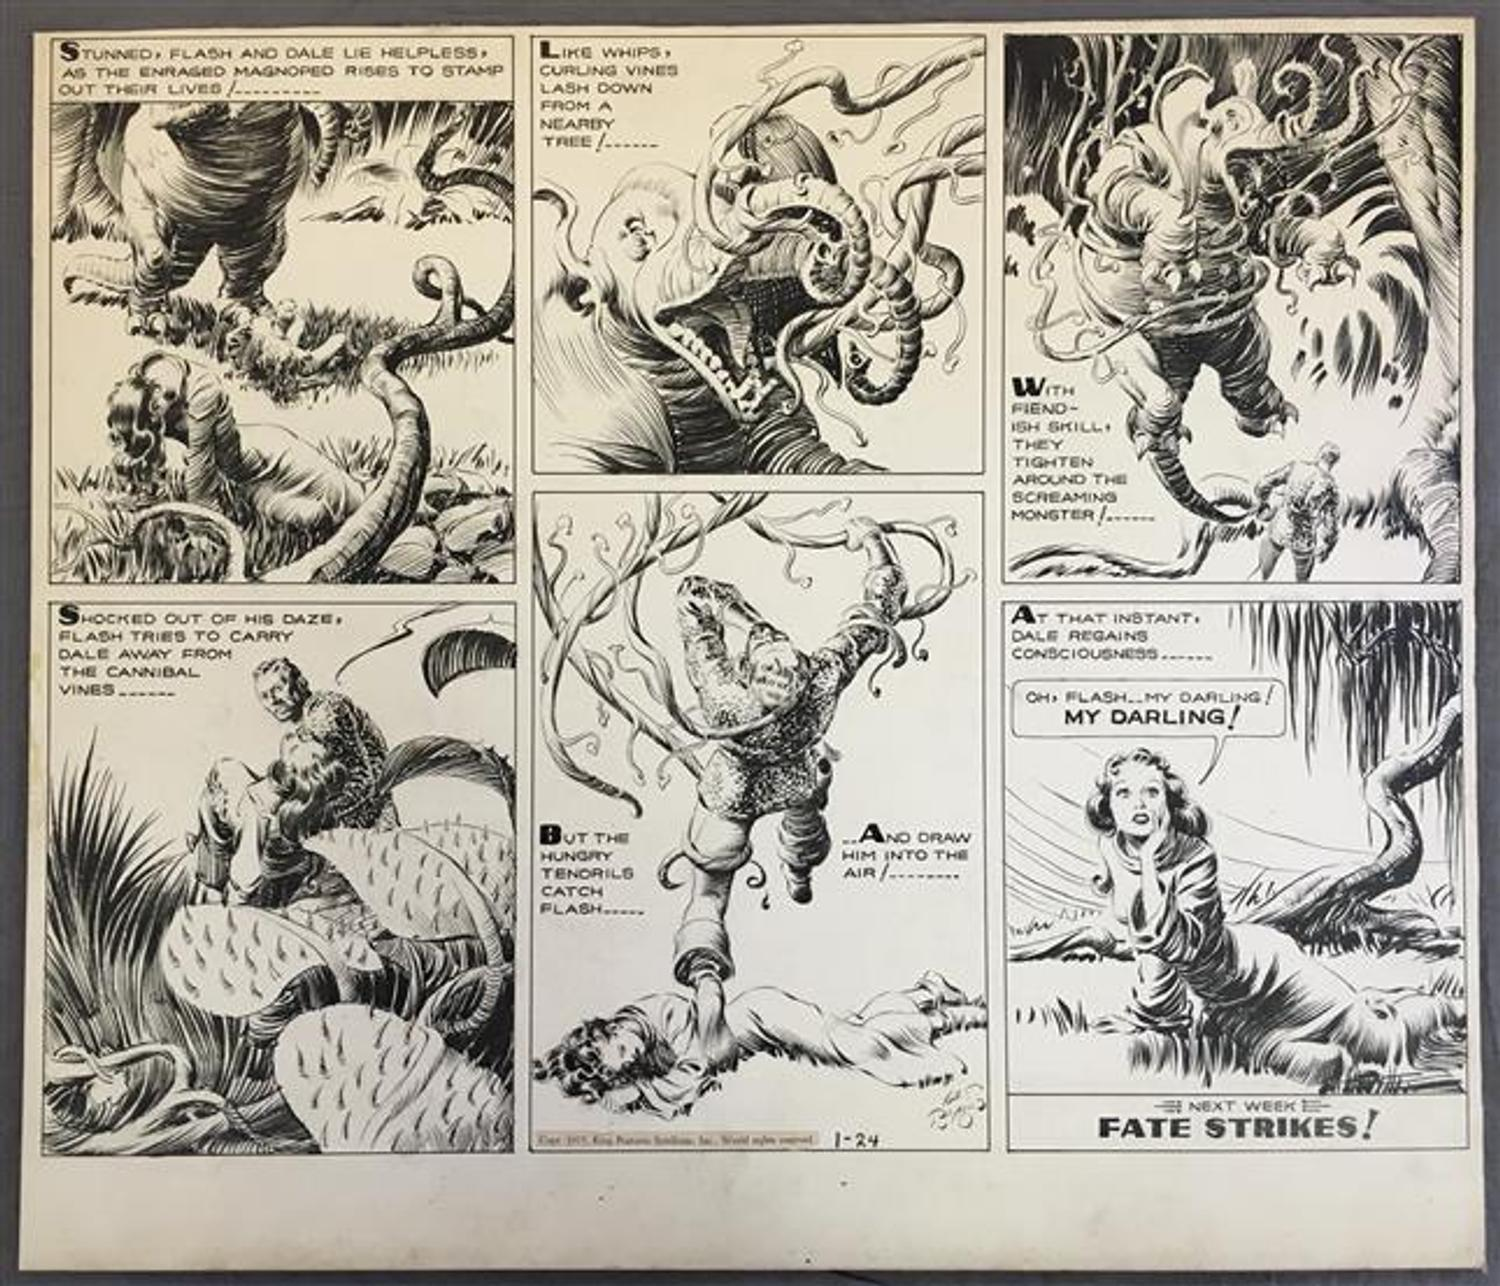 Original Sunday page artwork for a Flash Gordon comic strip from ...